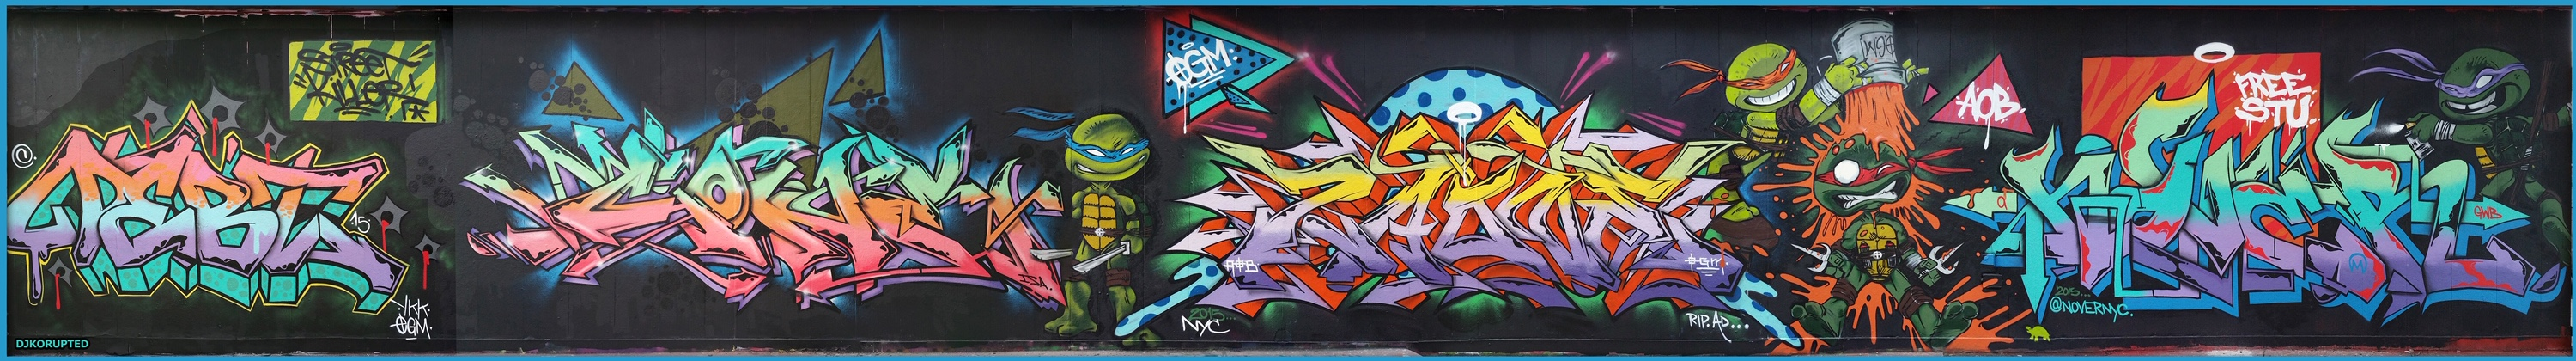 TMNT Wall Production, New York, NY. 2015.